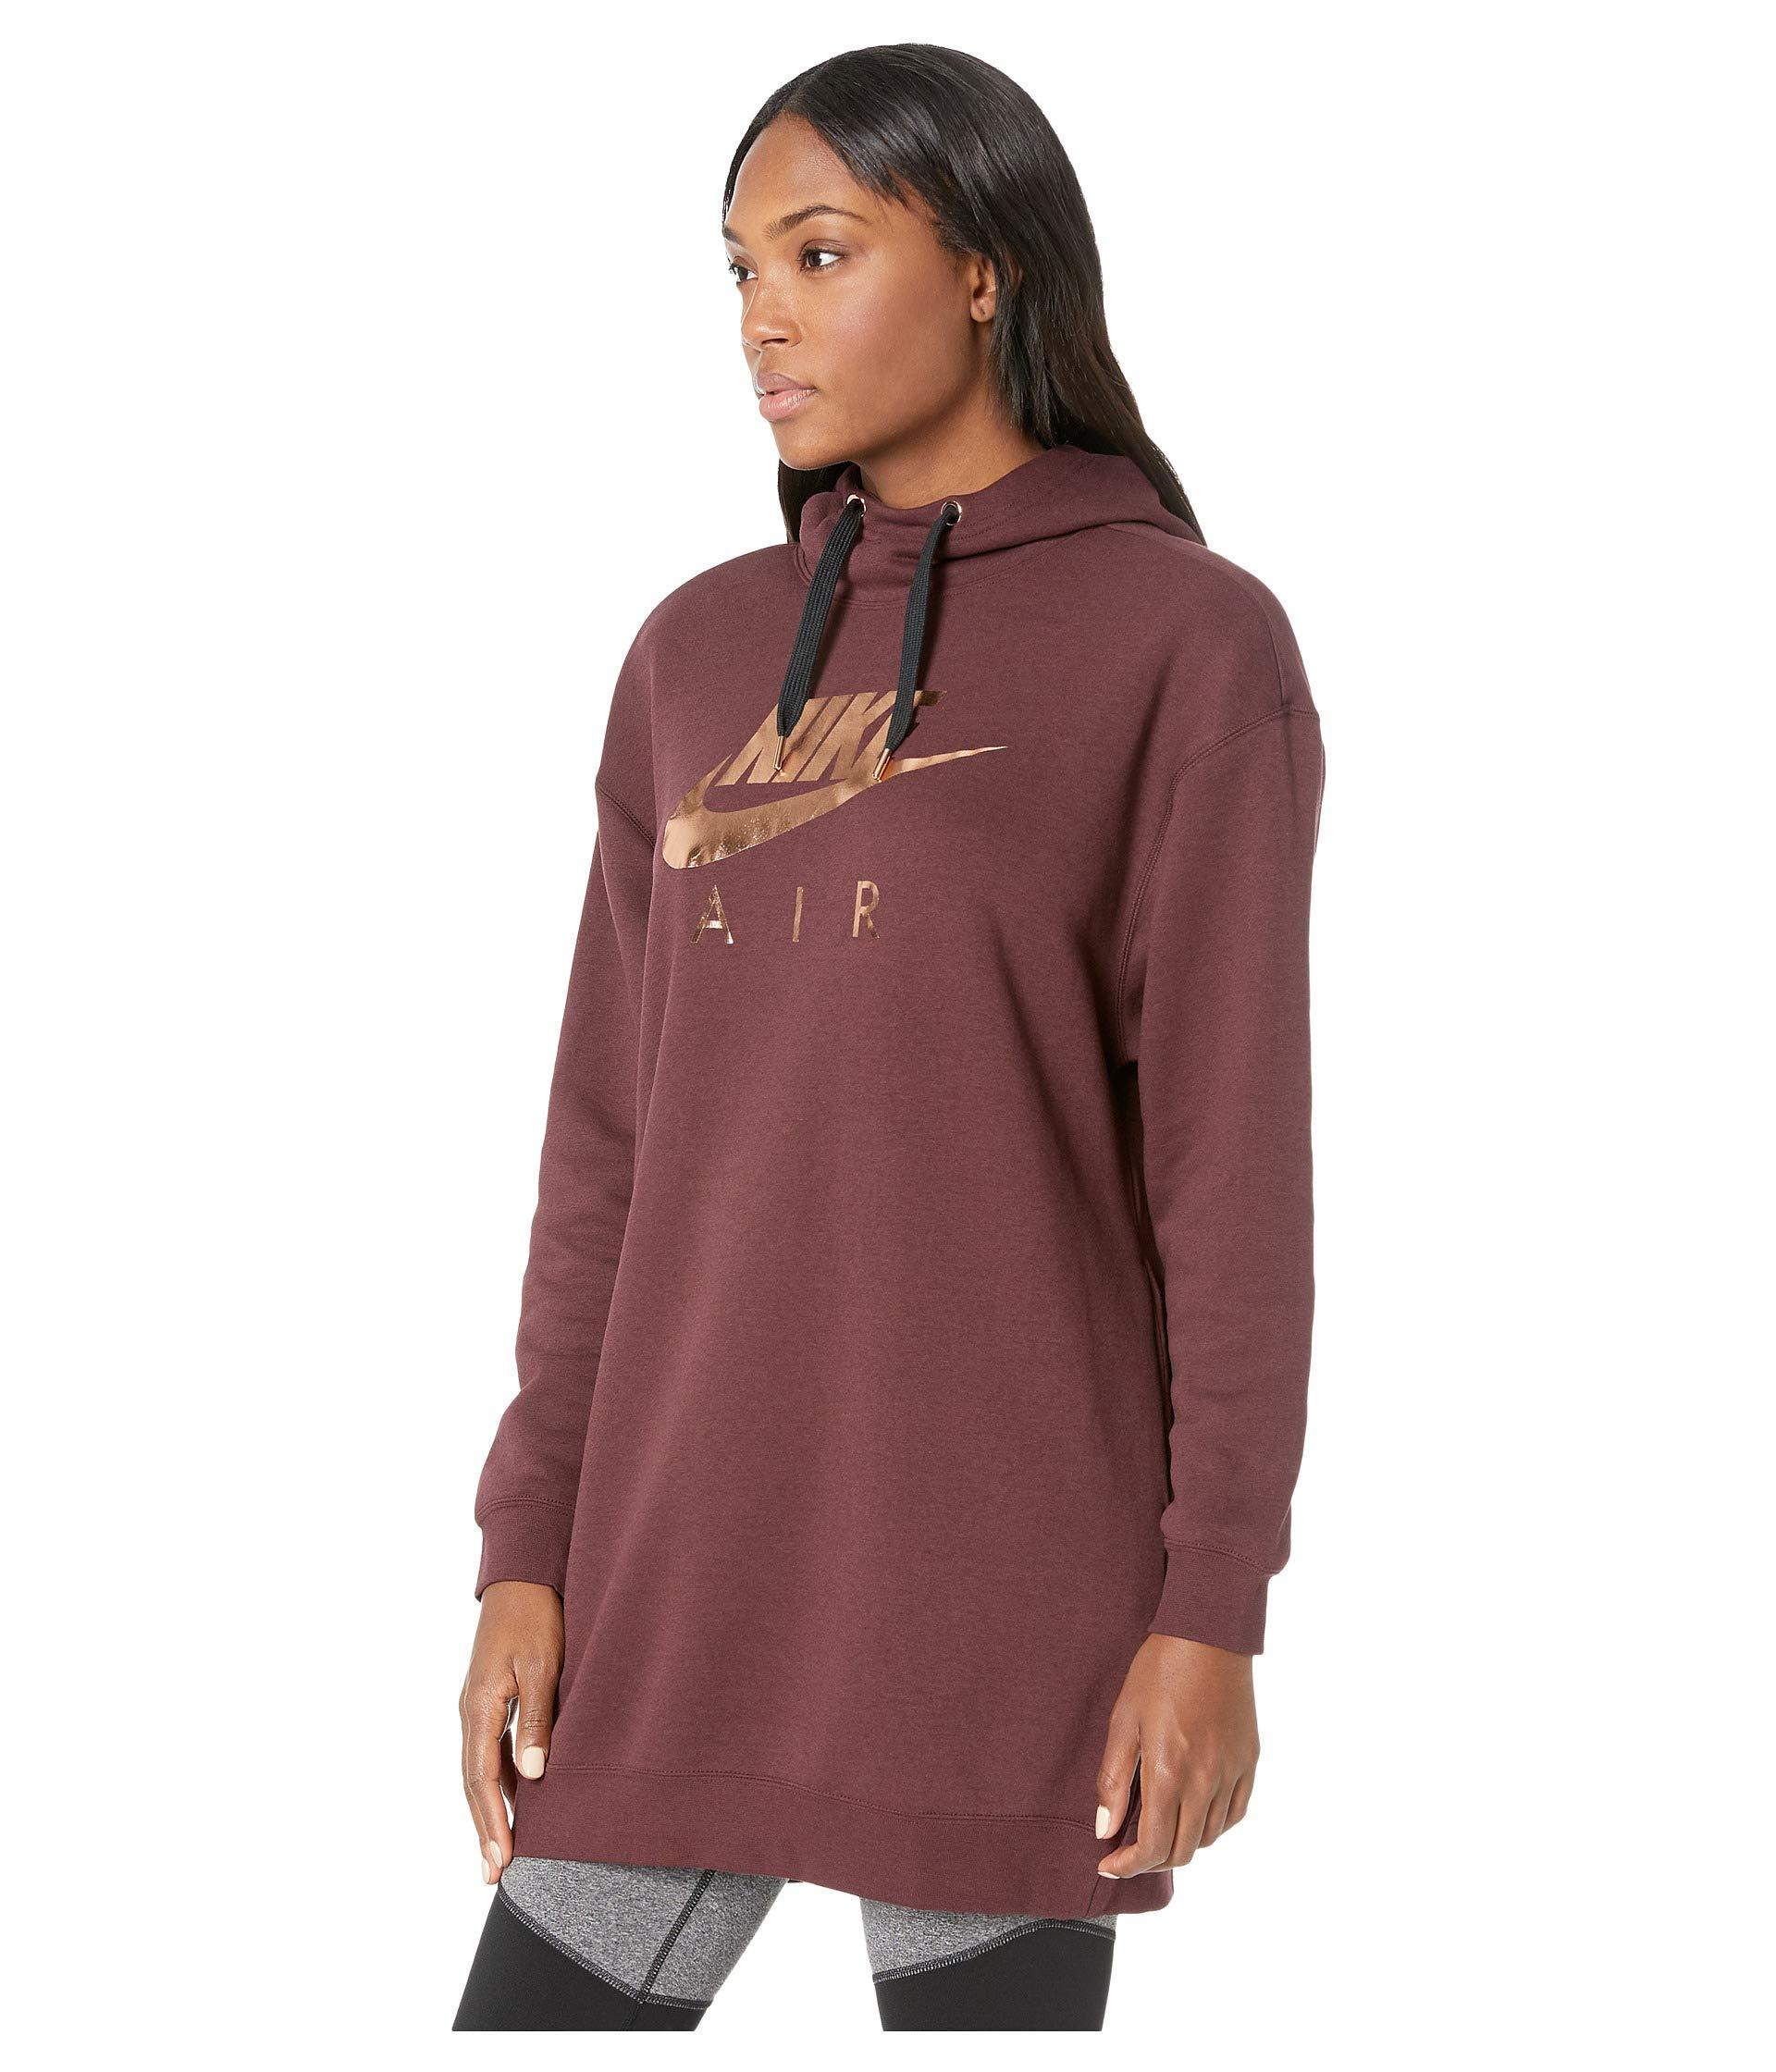 6e737148fe Lyst - Nike Sportswear Air Hoodie Oversize in Red - Save 25%